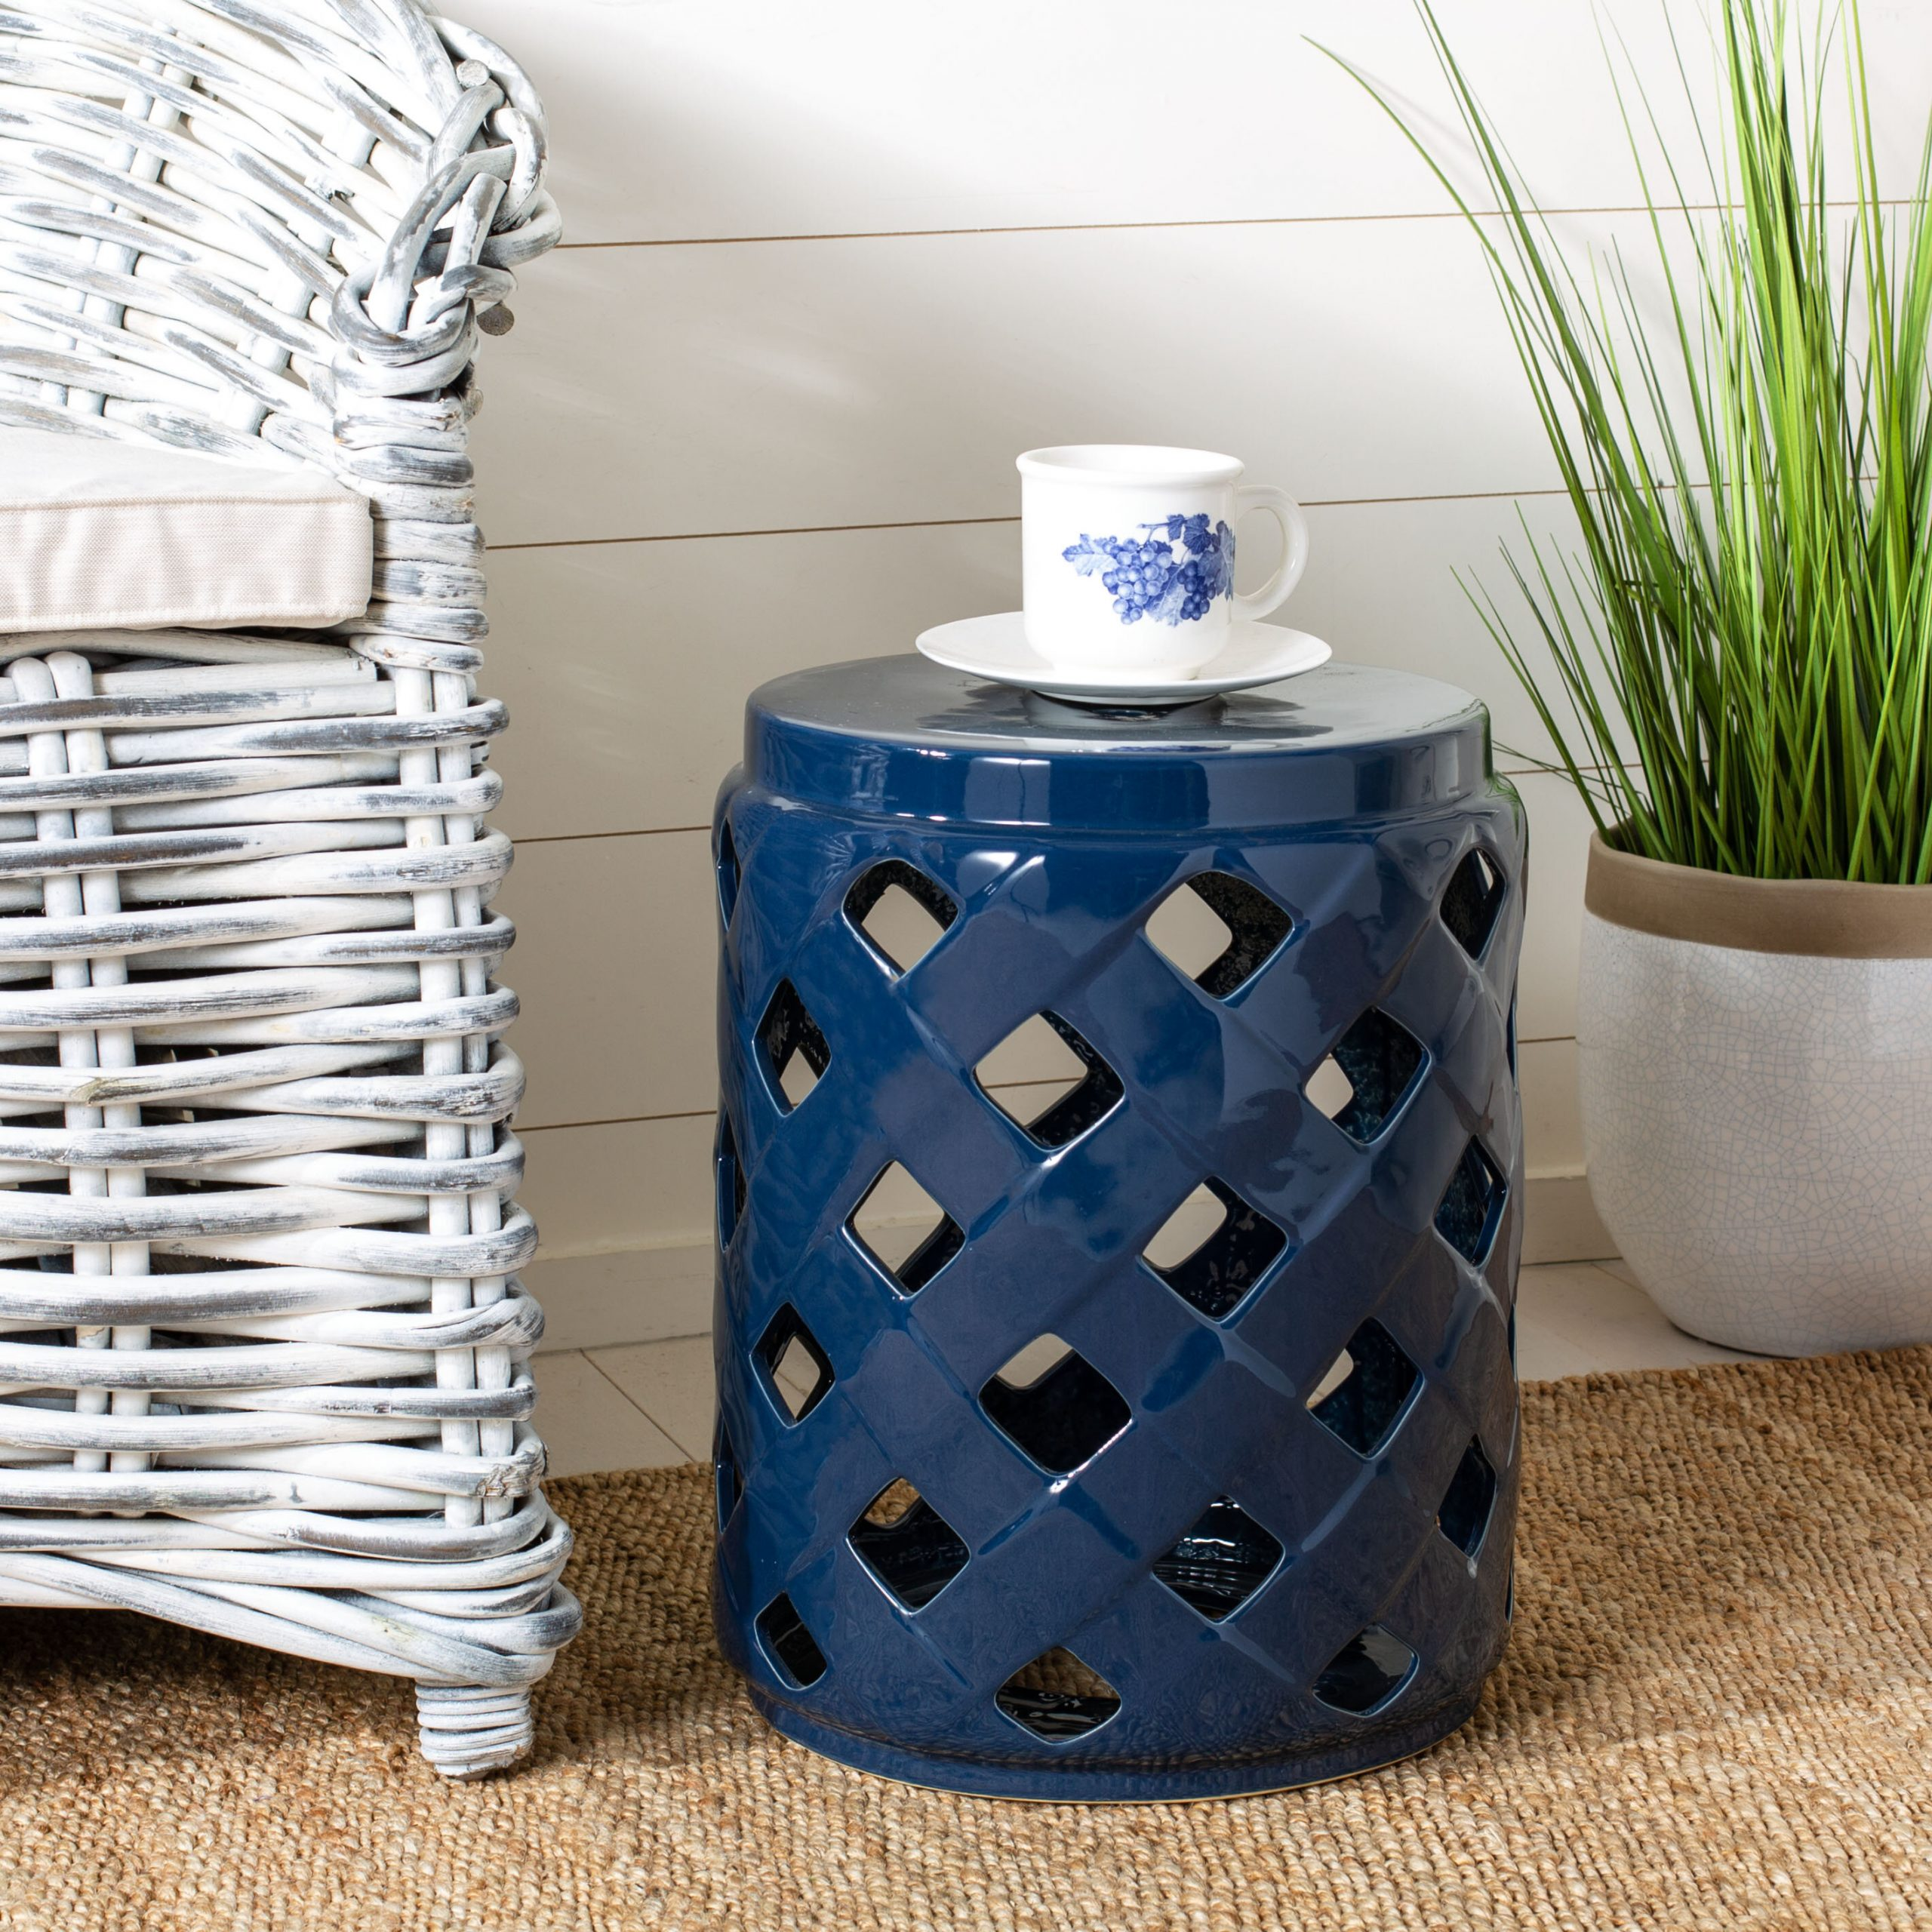 Garden Stools | Wayfair Within Fifi Ceramic Garden Stools (View 12 of 25)